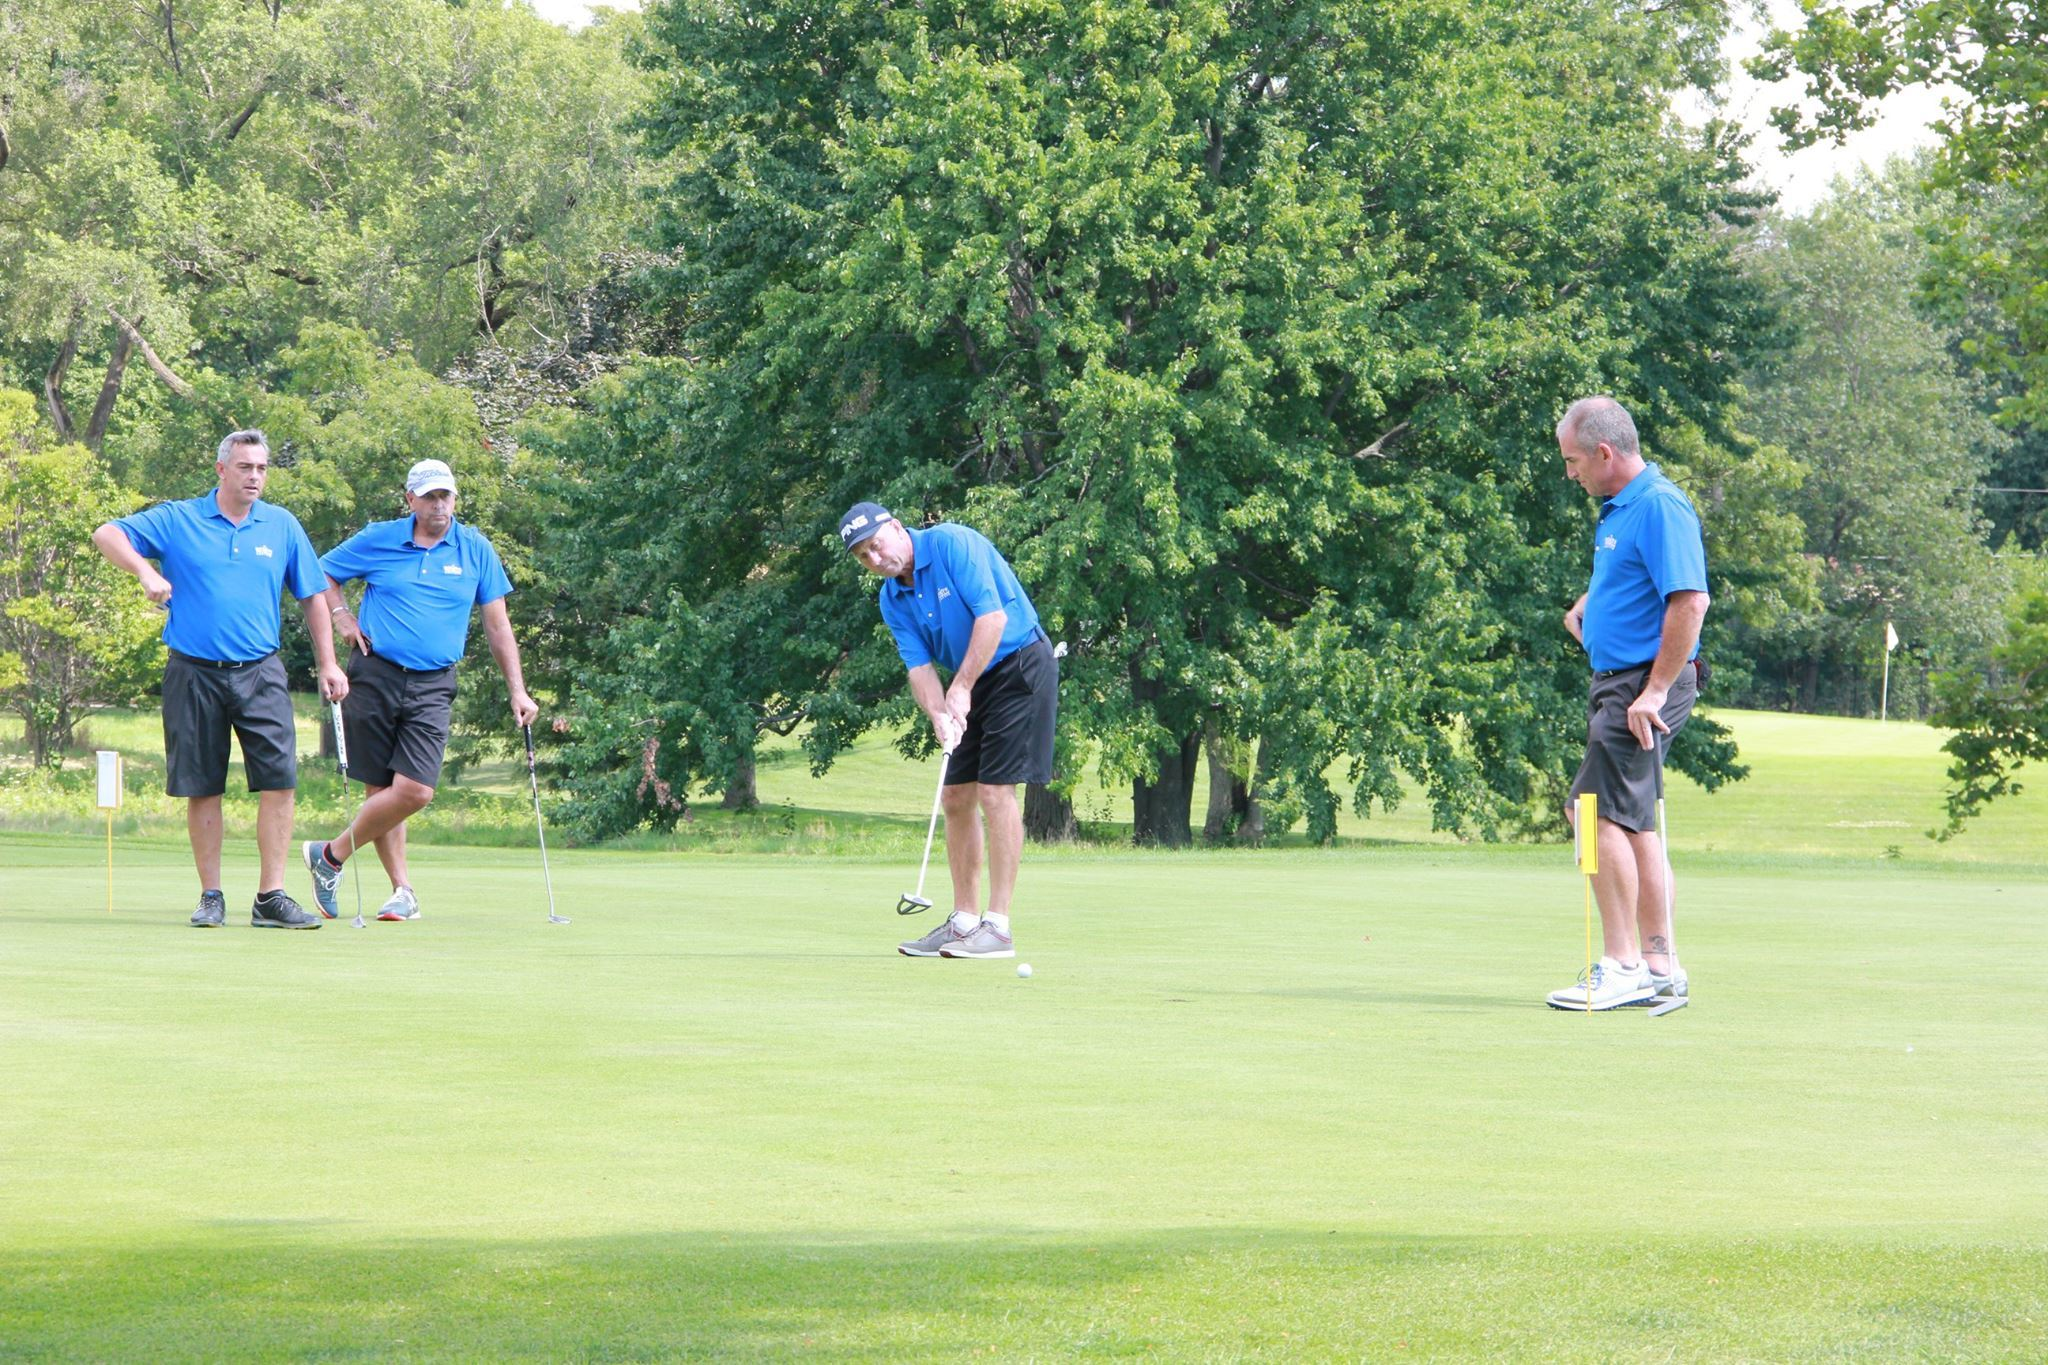 The ninth annual Links Technology Cup, set for Aug. 19, will benefit the Schaumburg Park Foundation.